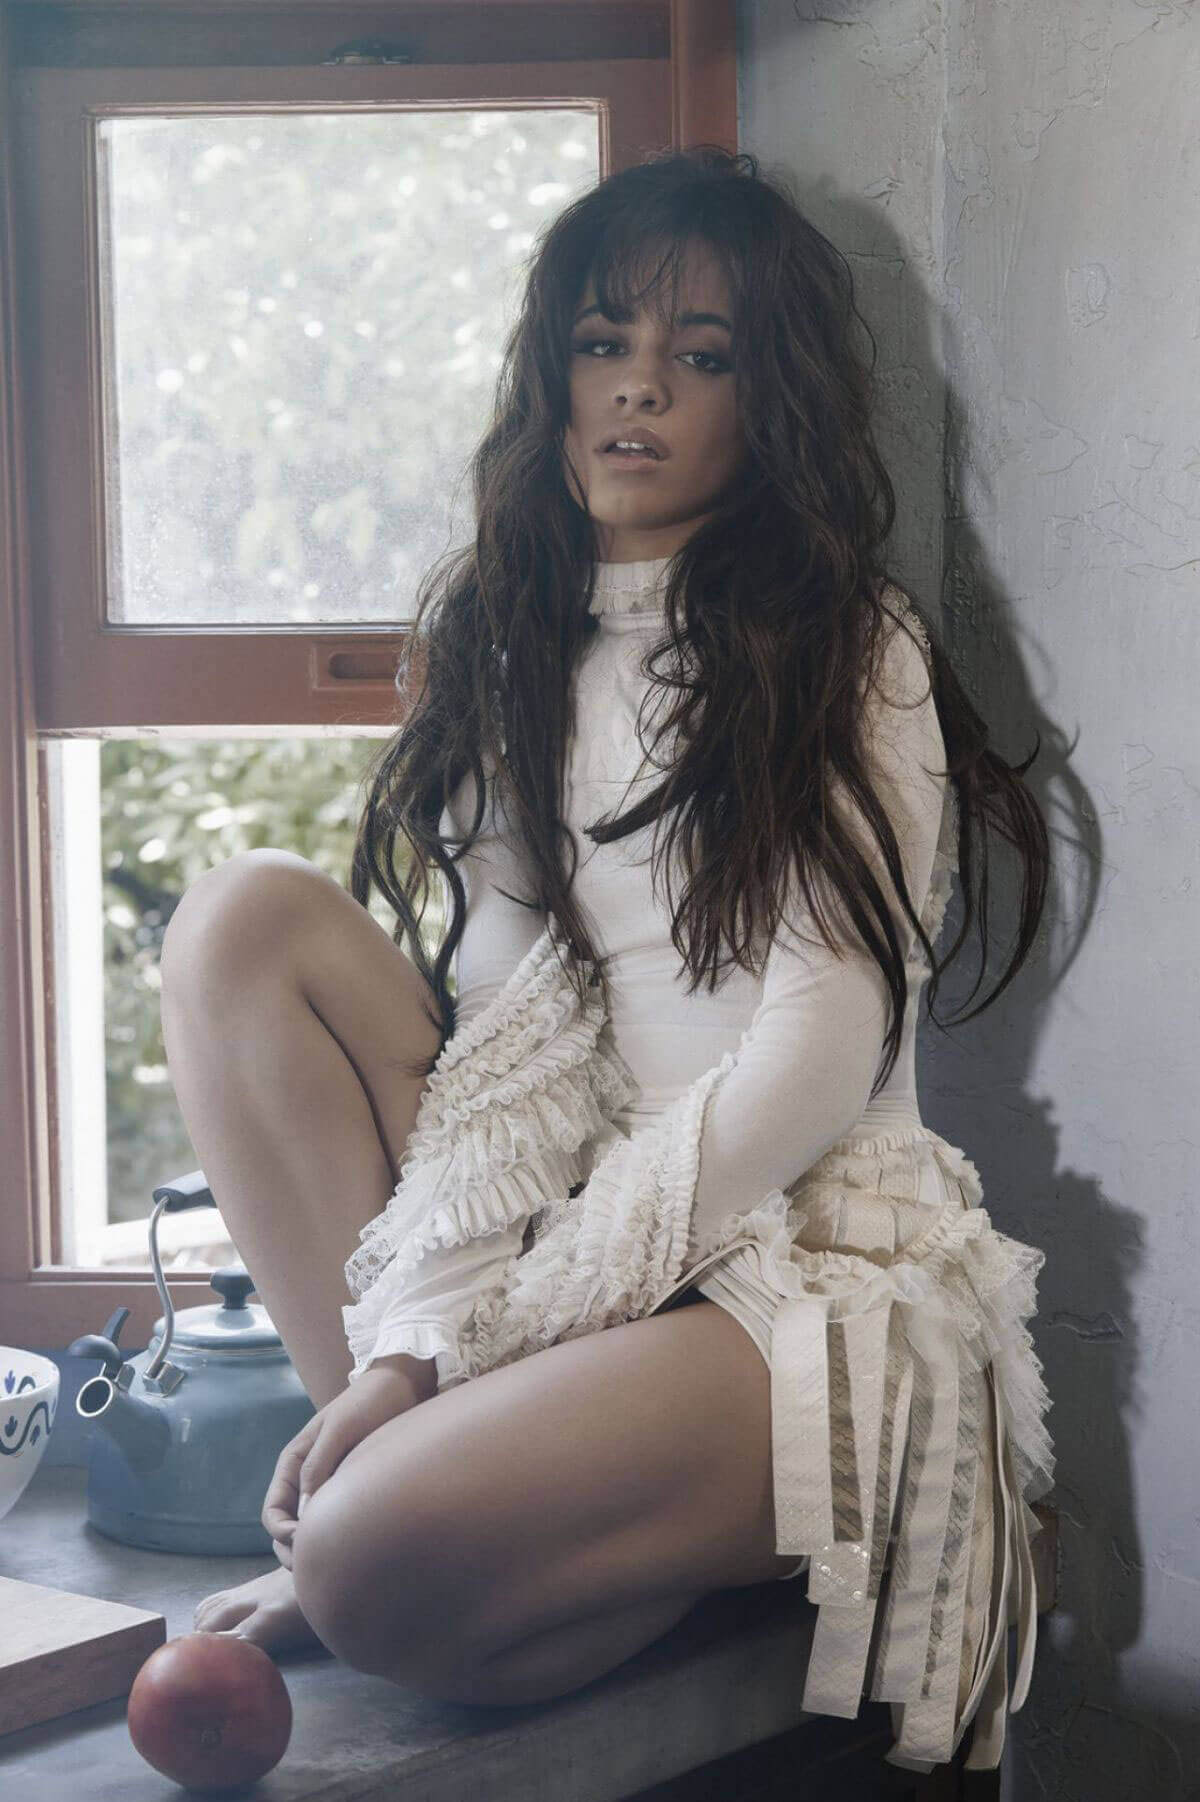 Camila Cabello Poses for Wonderland Magazine, 2017 Photoshoot